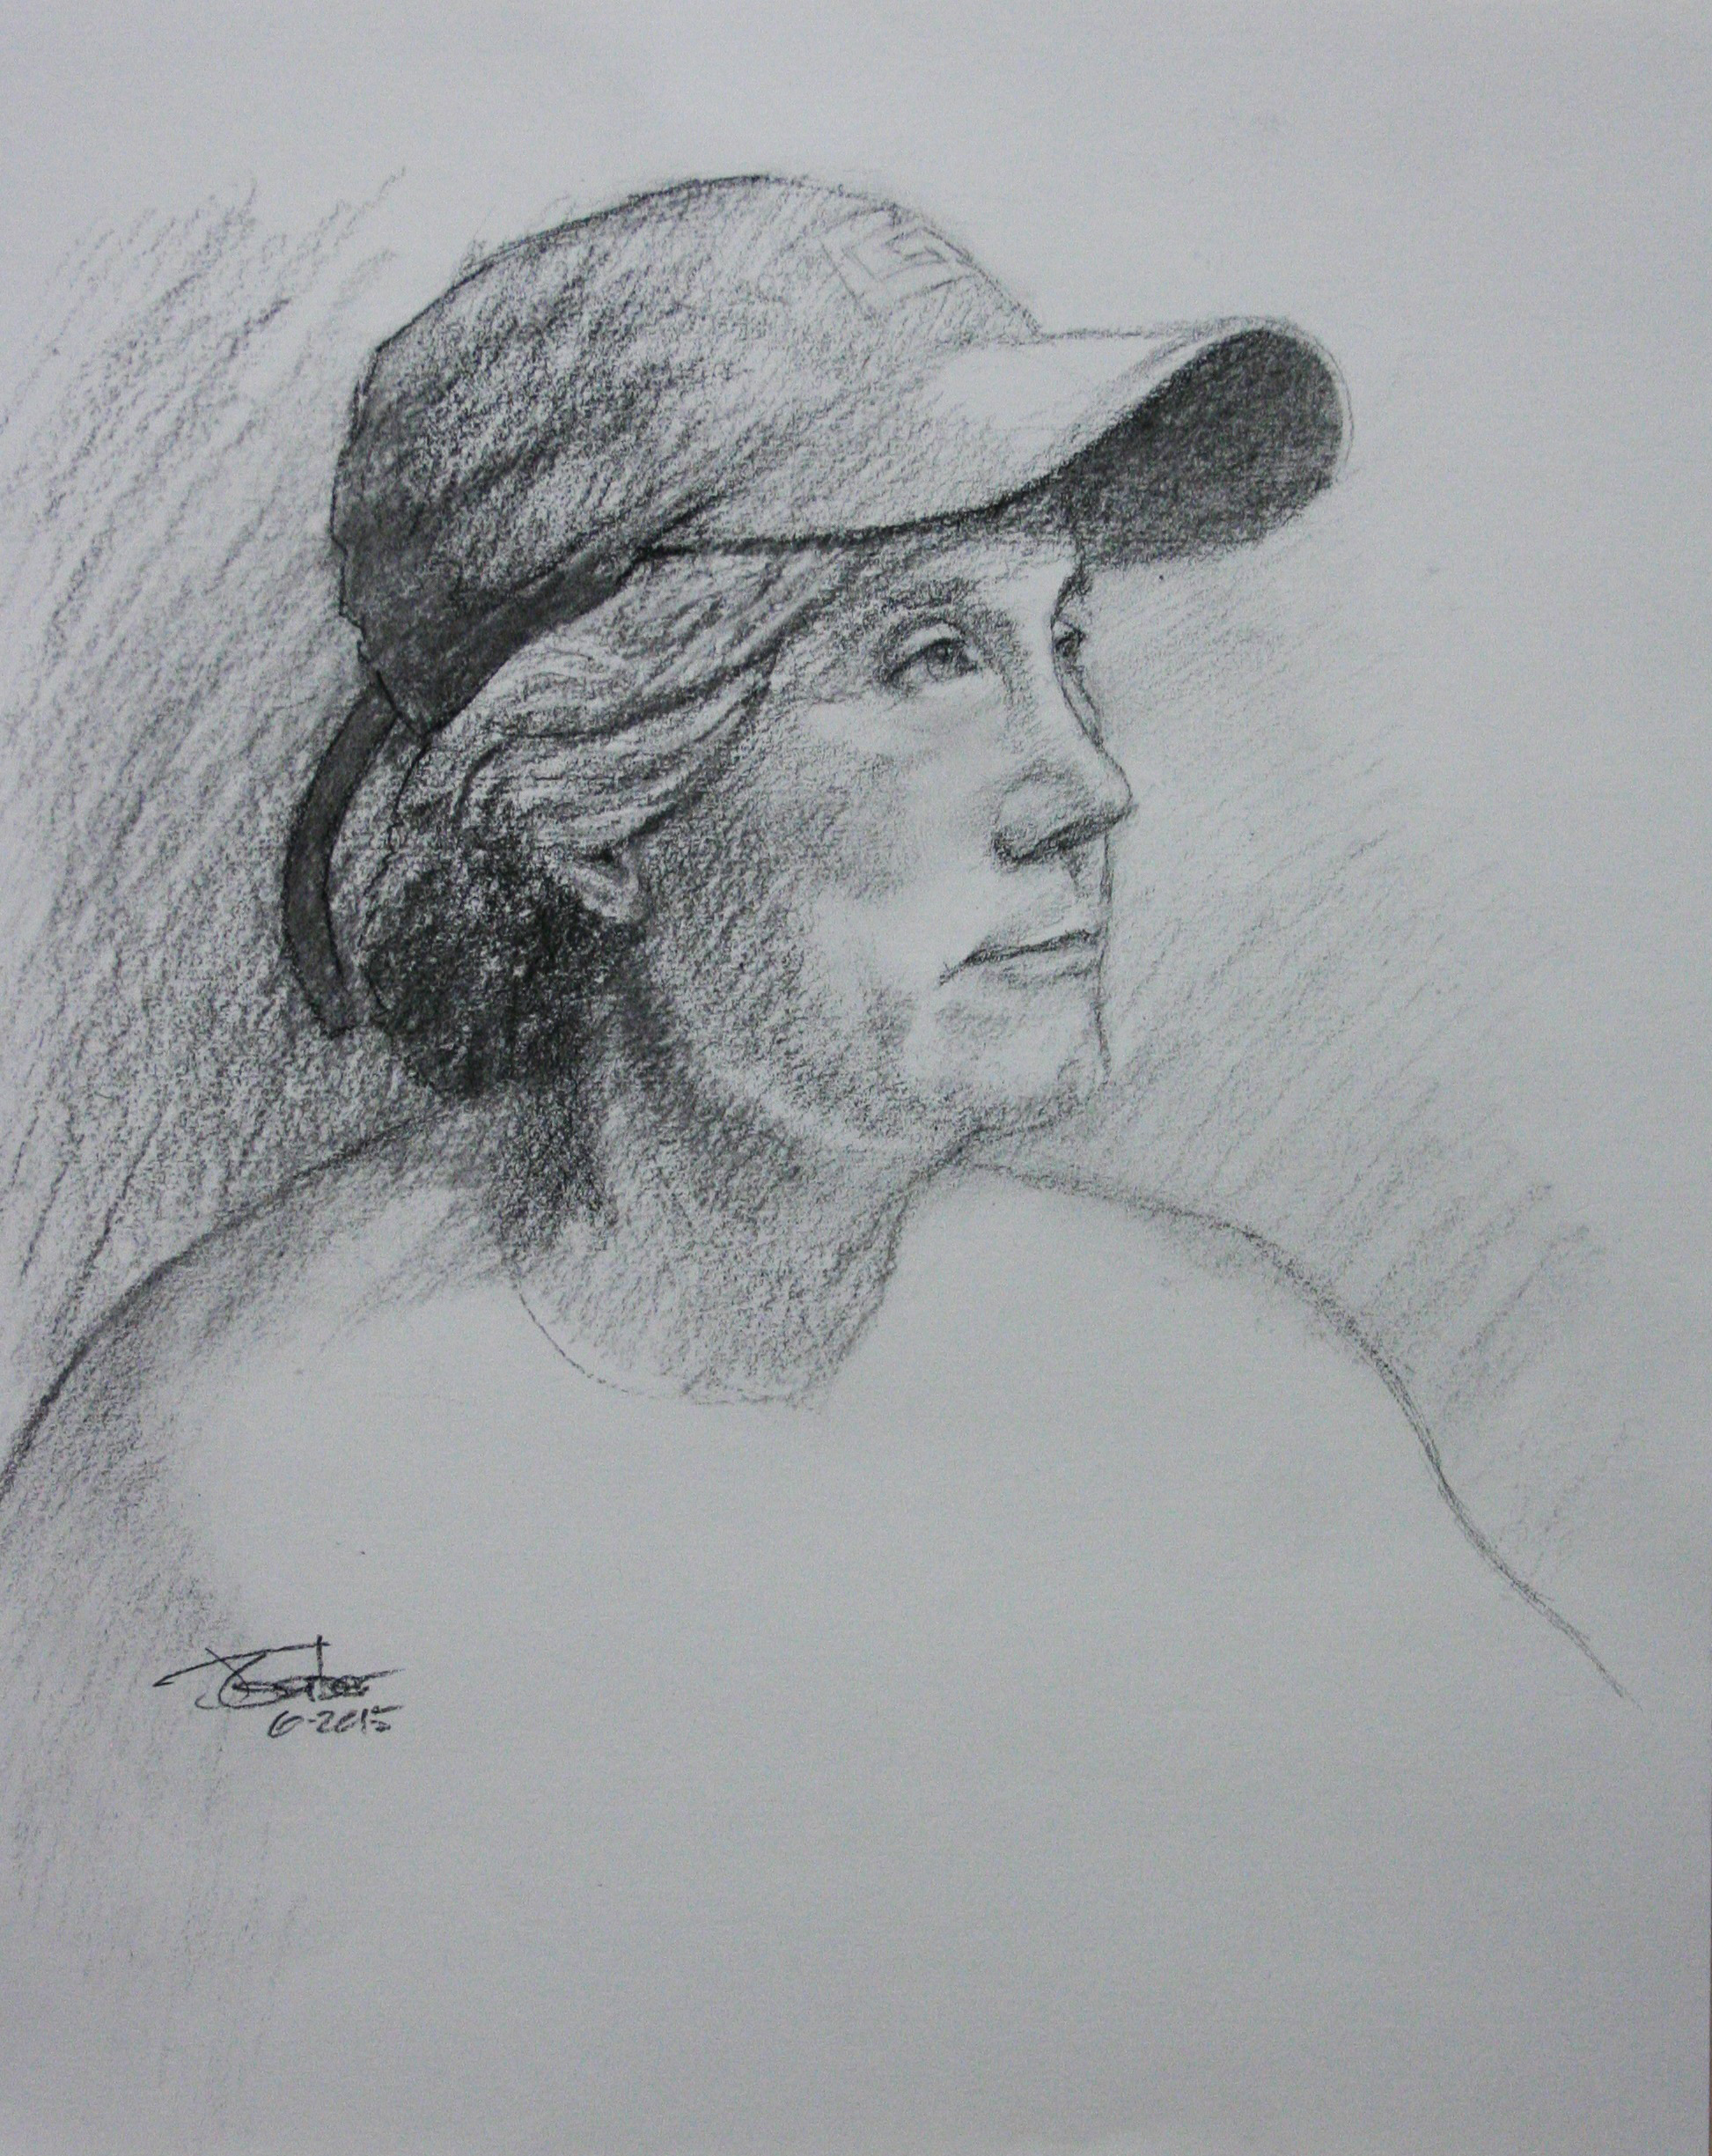 Jim Gerber did this two and a half hour drawing.